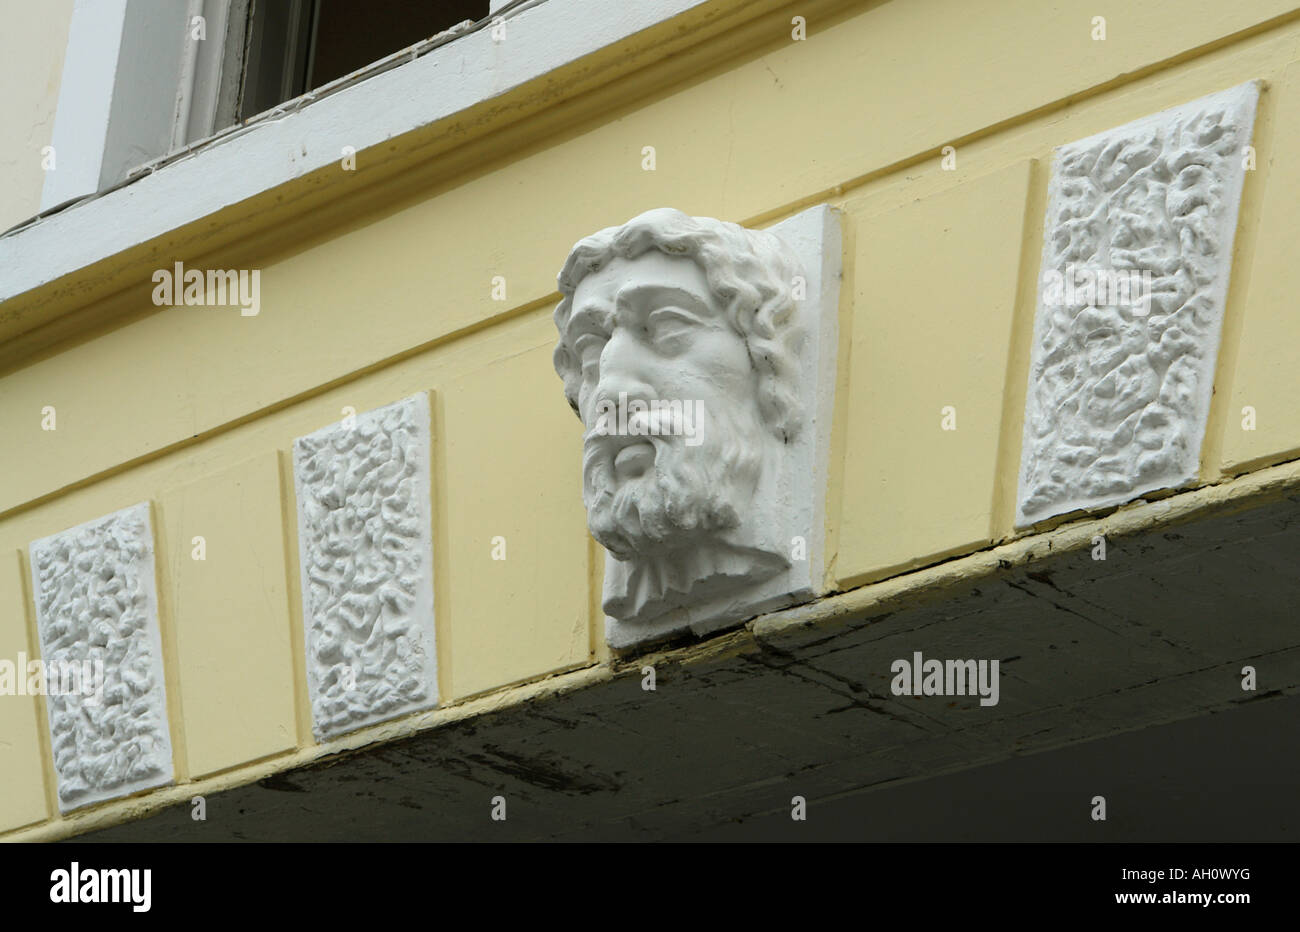 Ireland Irish Sculpture Art Stock Photos & Ireland Irish Sculpture ...